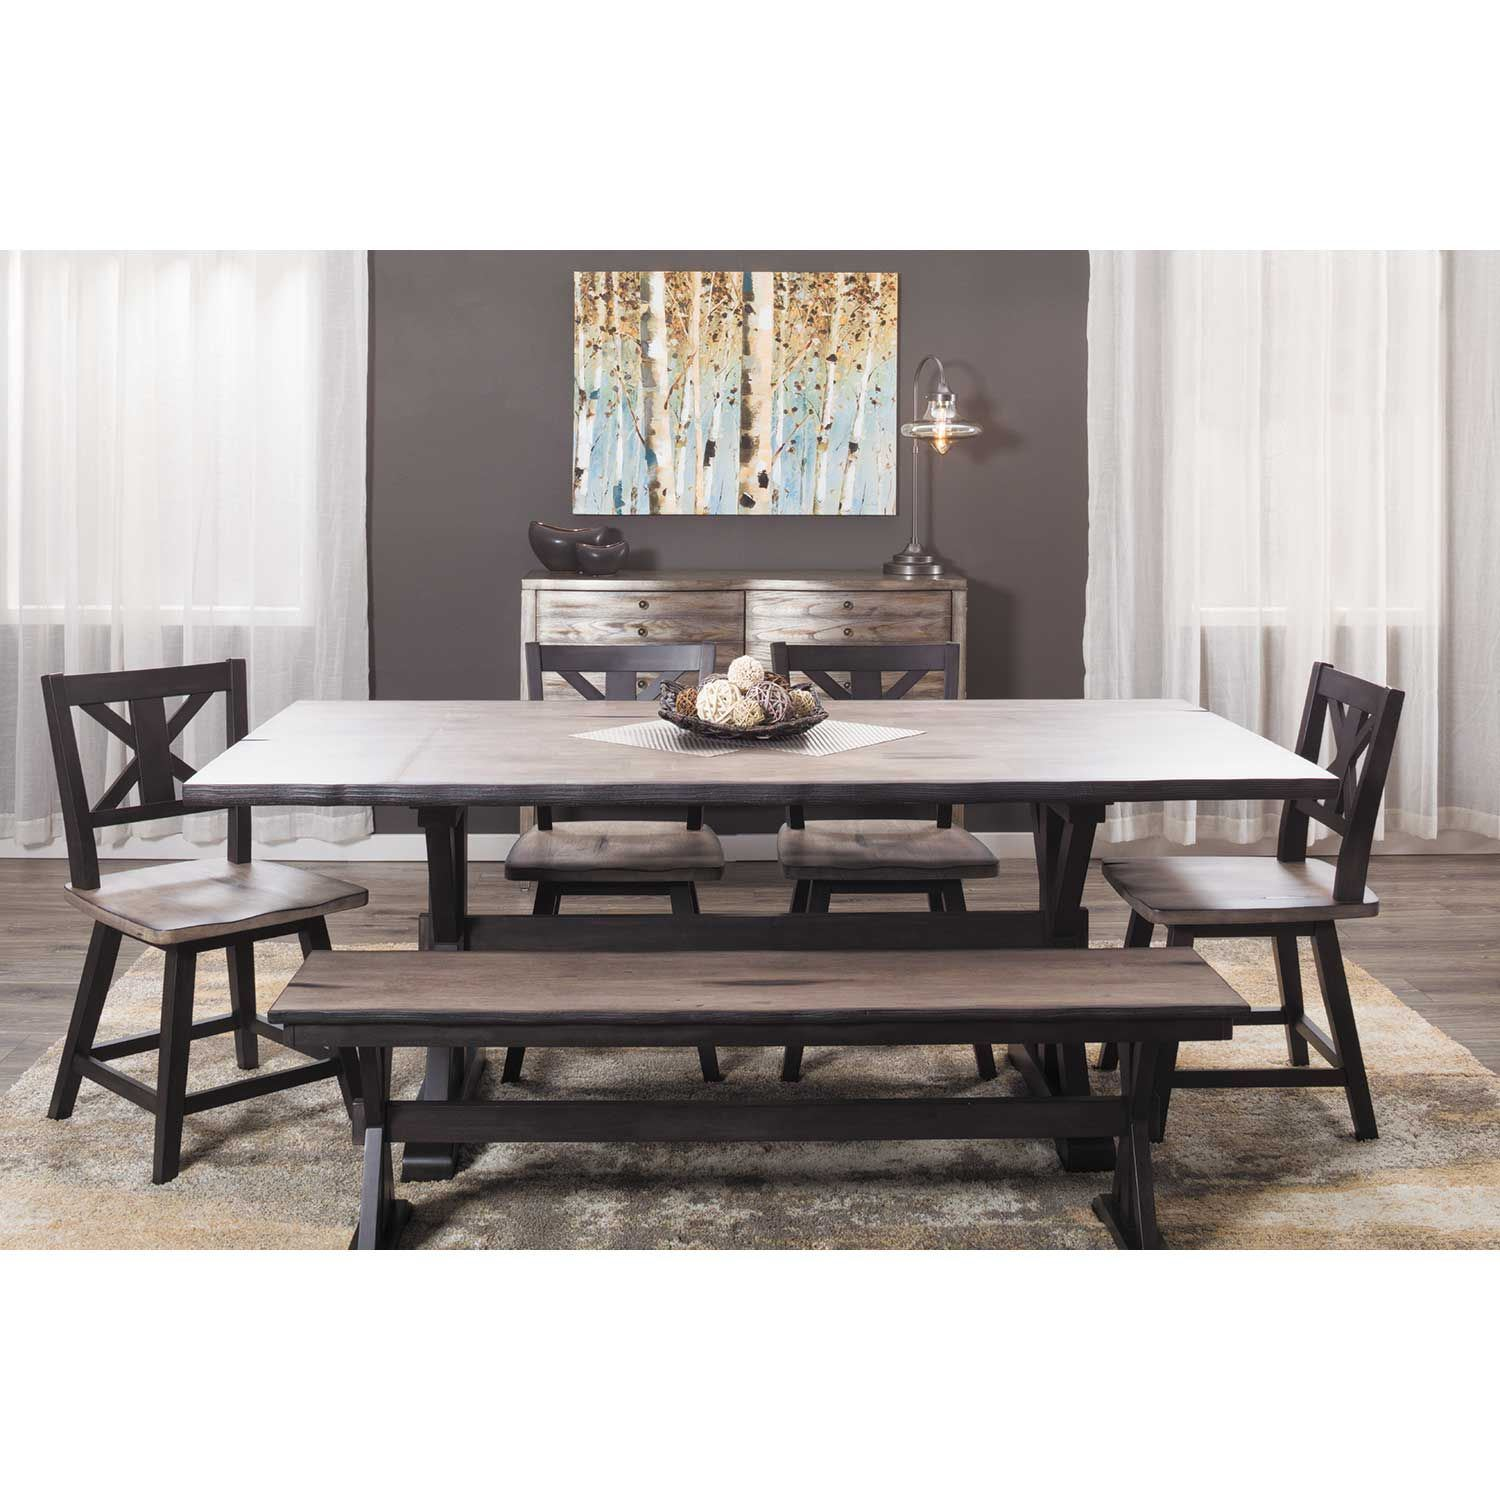 Urban Farmhouse 6 Piece Dining Set 1871 1872 4 1873